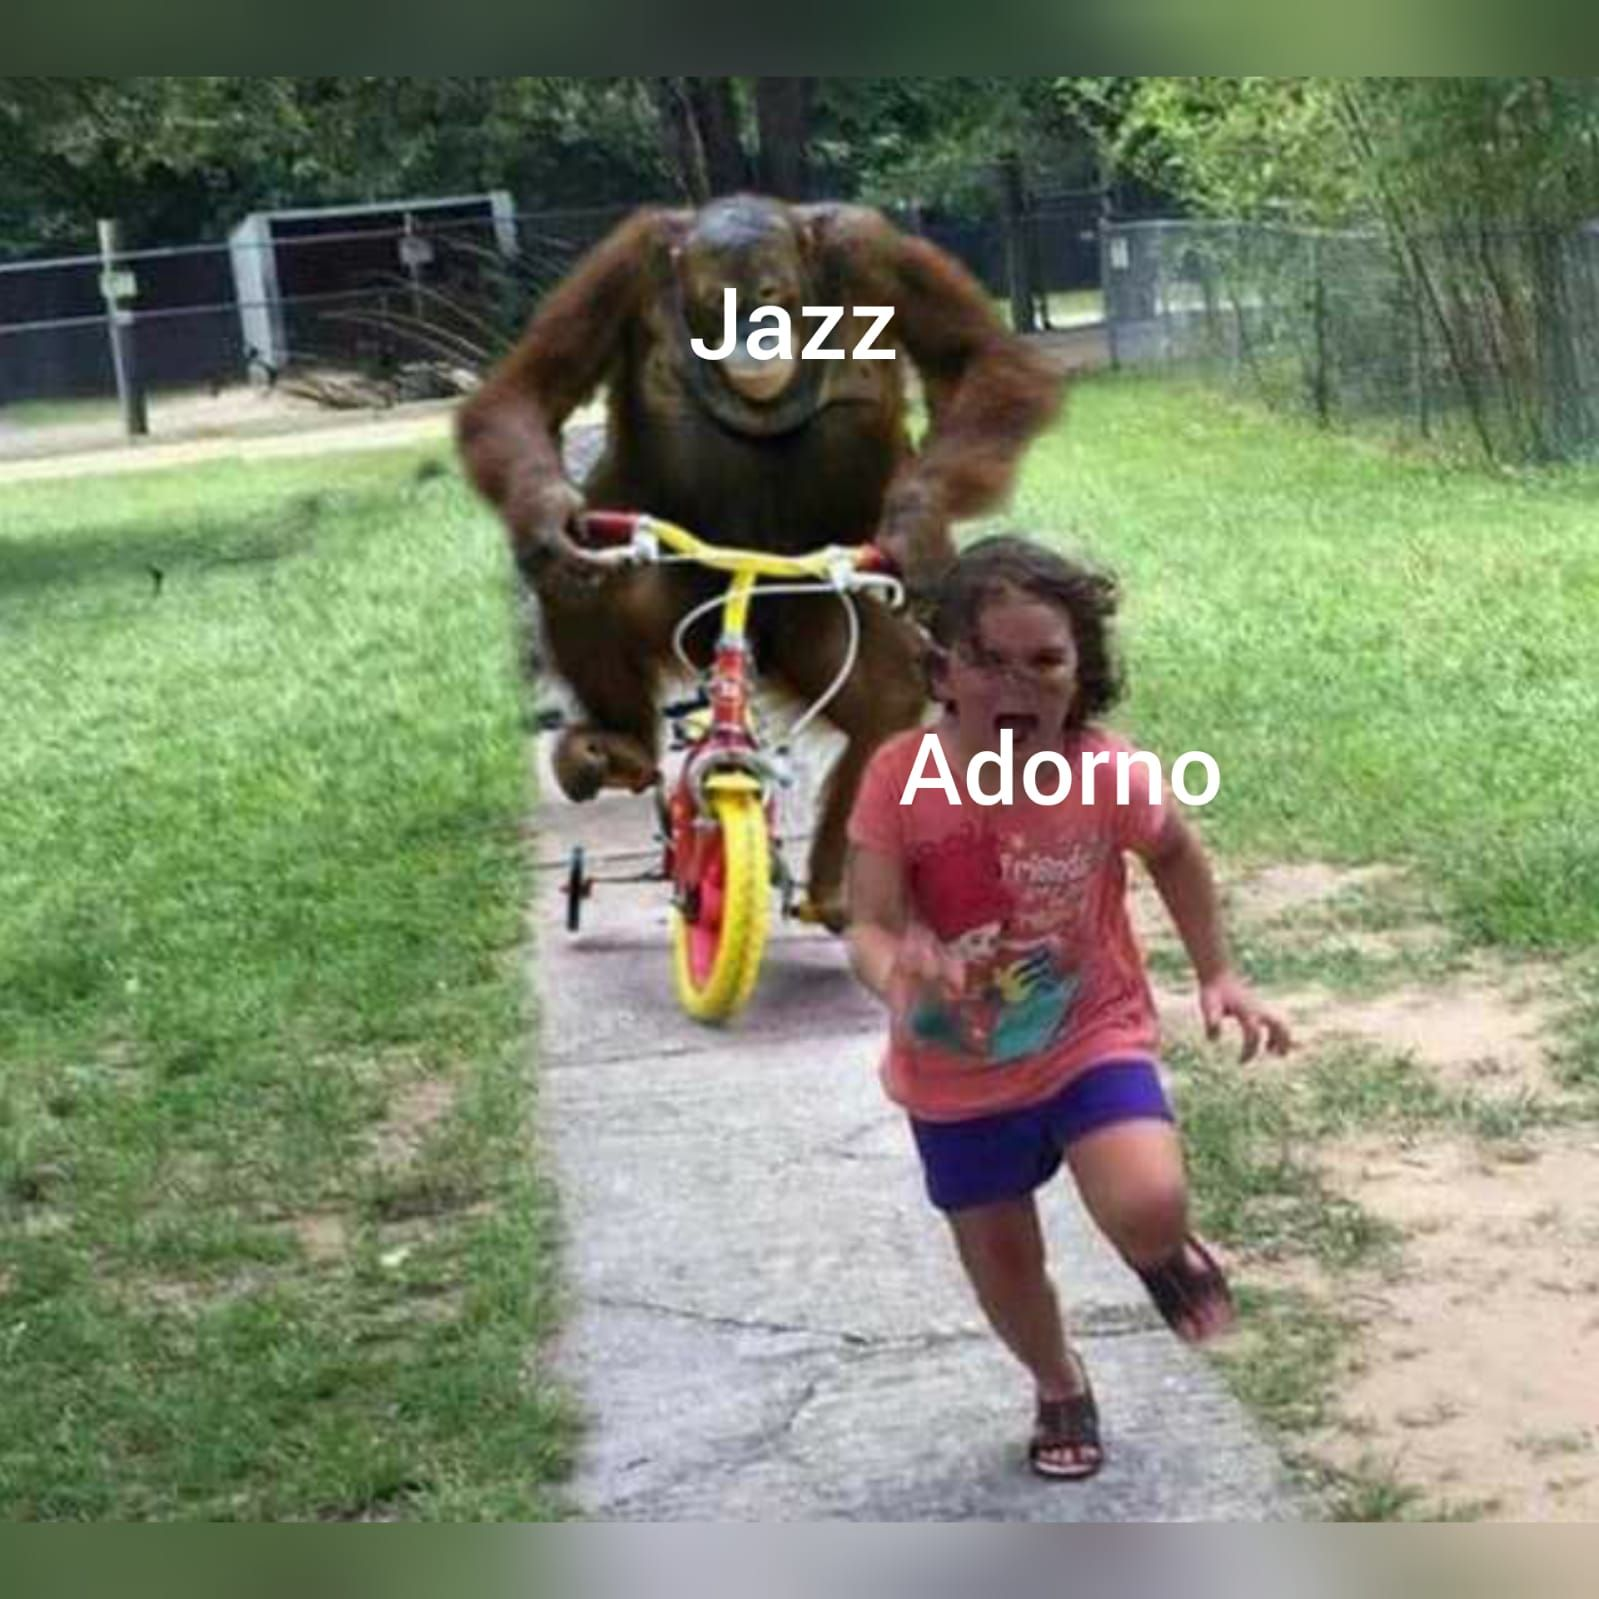 Do you like jazz?